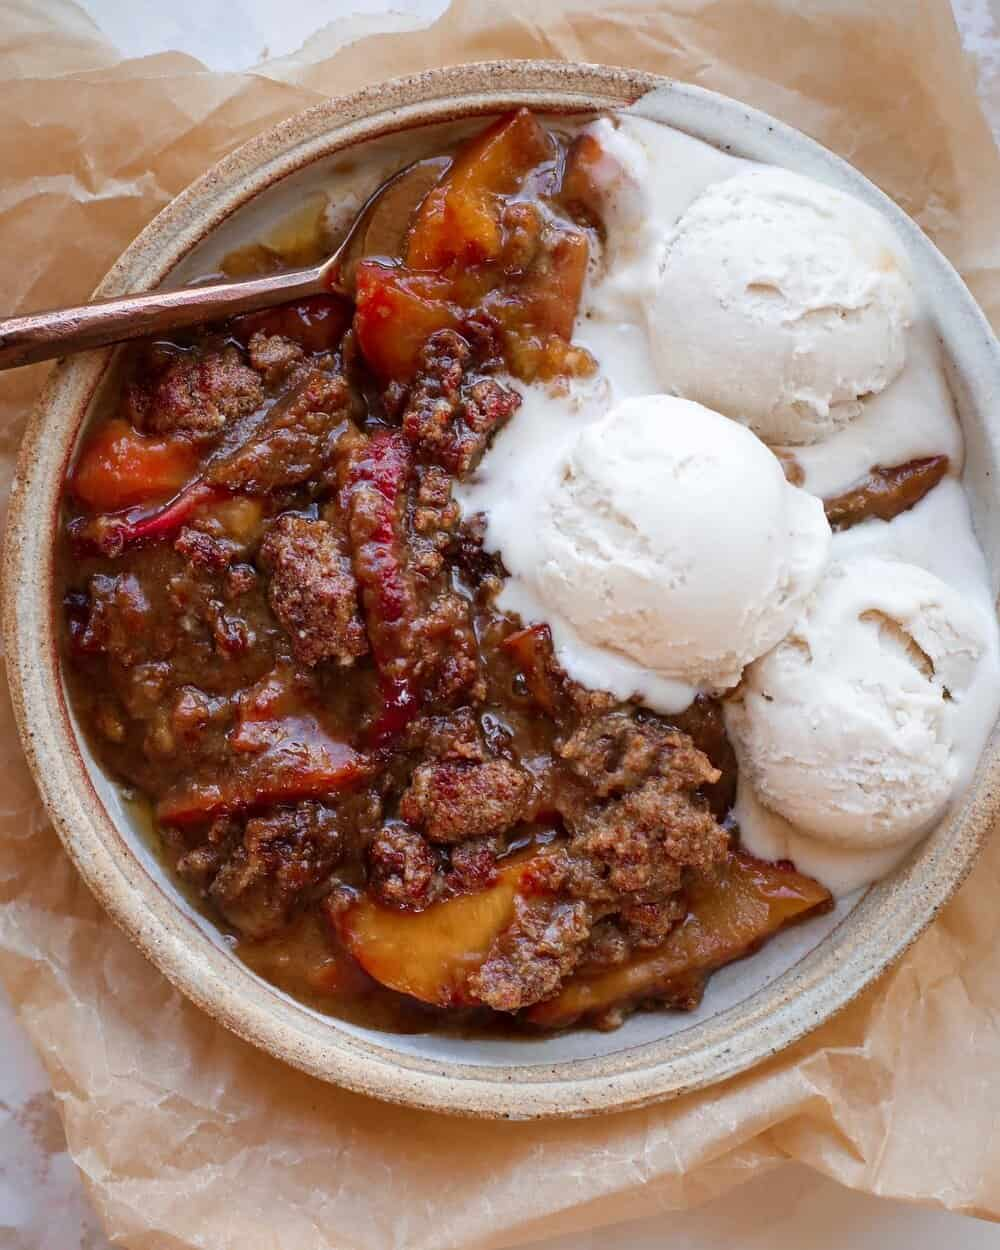 VEGAN PEACH COBBLER - INGREDIENTS4 fresh peaches, cut into slices (if using frozen peaches, use one 12 oz bag and you need 1 tablespoon arrowroot or corn starch or tapioca flour)3/4 cup gluten free flour (or regular flour)1/2 cup coconut sugar1 teaspoon baking powder1/4 cup vegan butter or regular butter, melted1 teaspoon sea saltIce cream to top